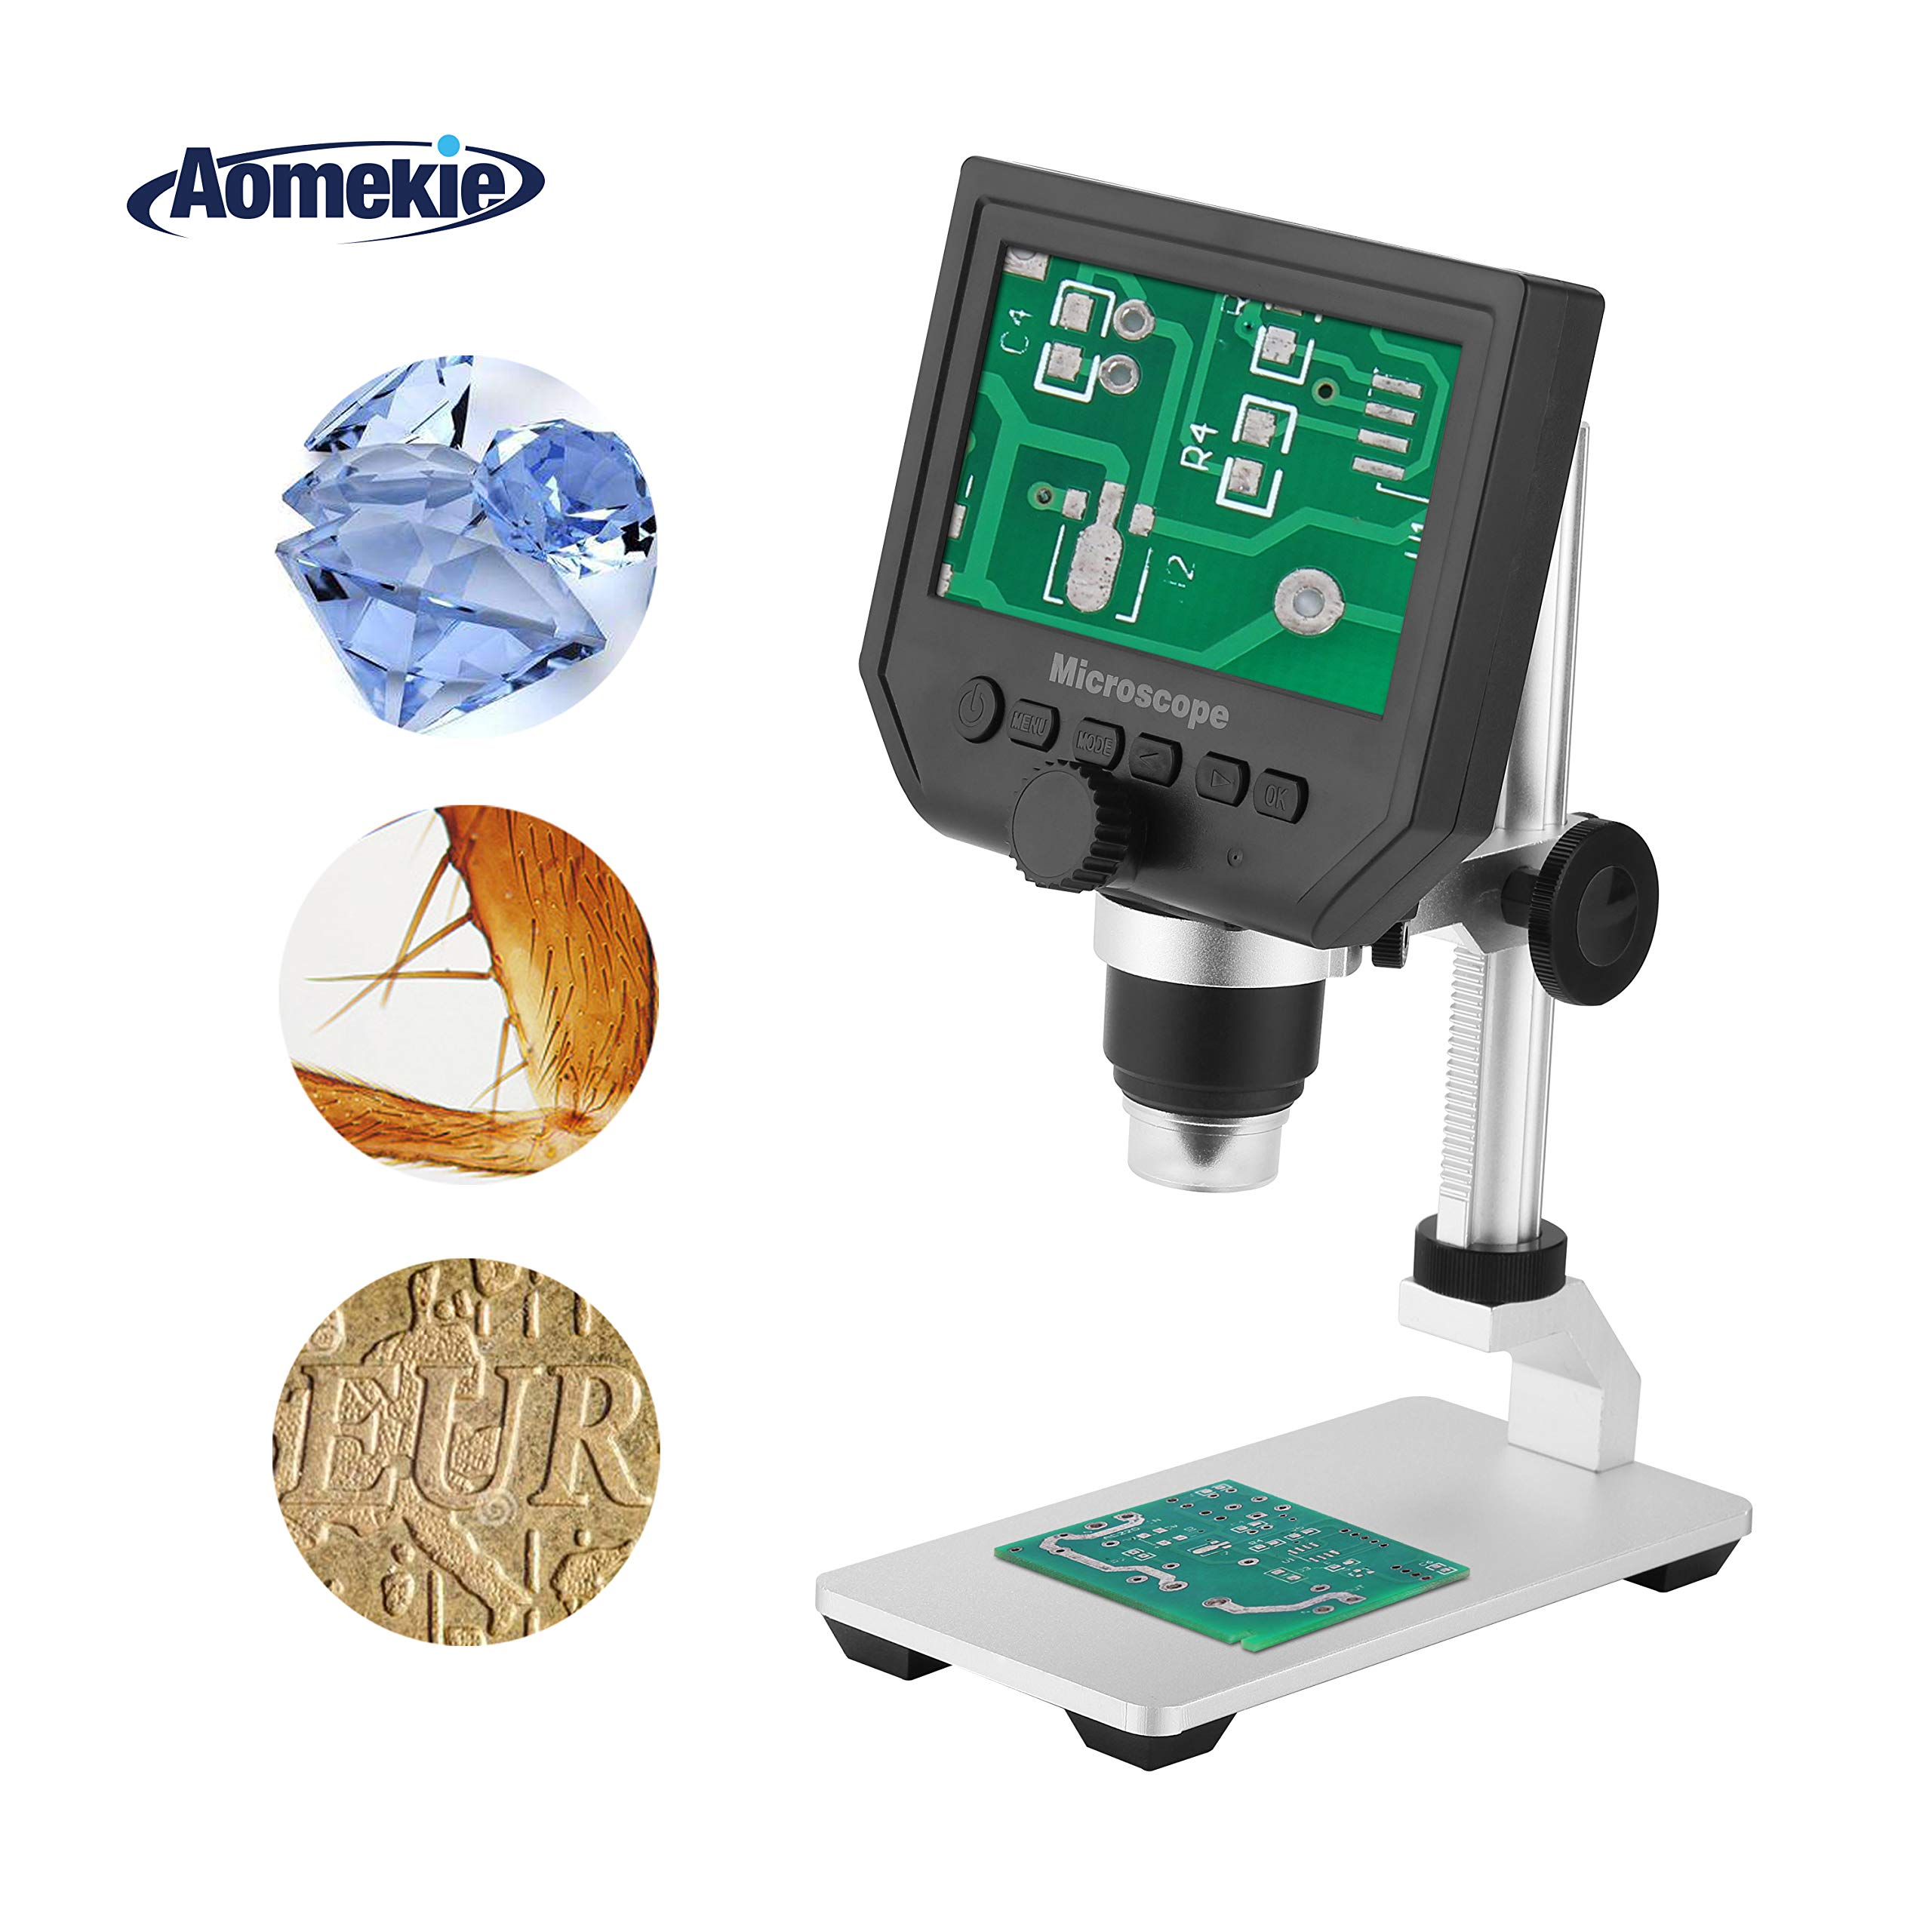 Aomekie LCD Digital Microscope with 4.3'' Screen 1080P Soldering Microscopes 1-600X Zoom with 8 LED Adjustable Lightand Rechargeable Lithium Battery for Cellphone PC Circuit Board SMD Repair by AOMEKIE